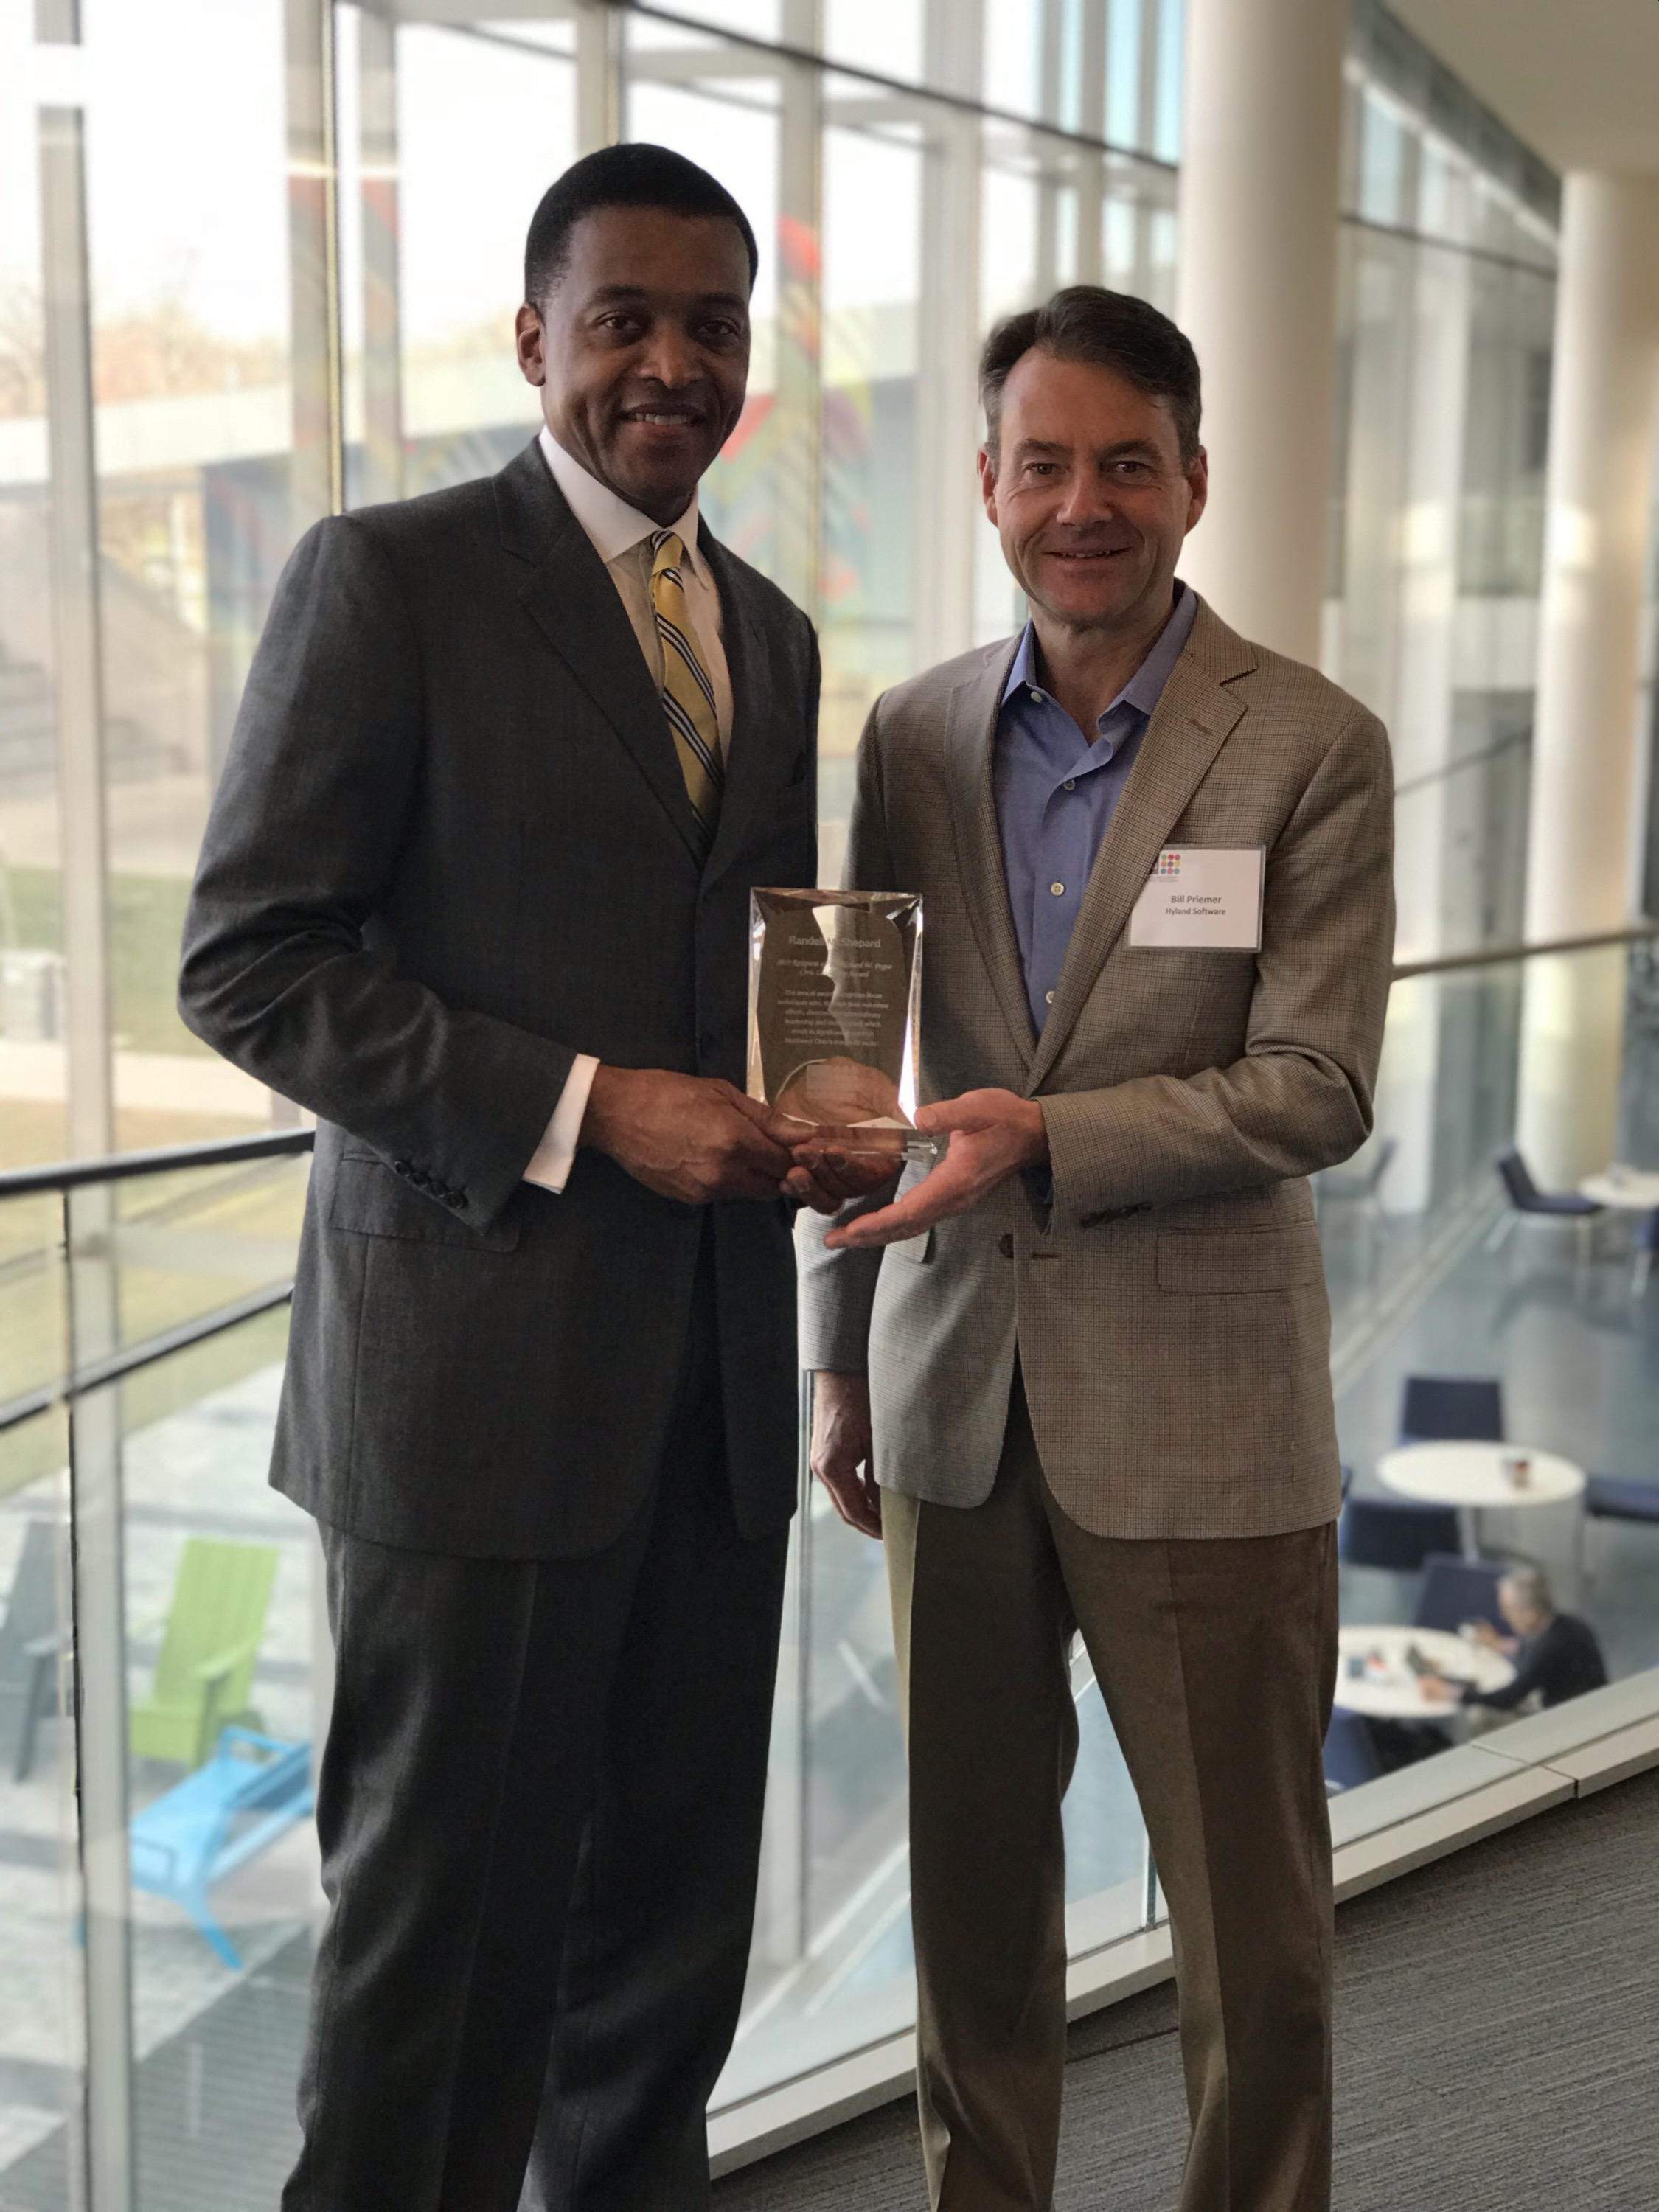 Randell McShepard Receives Richard W. Pogue Civic Leadership Award